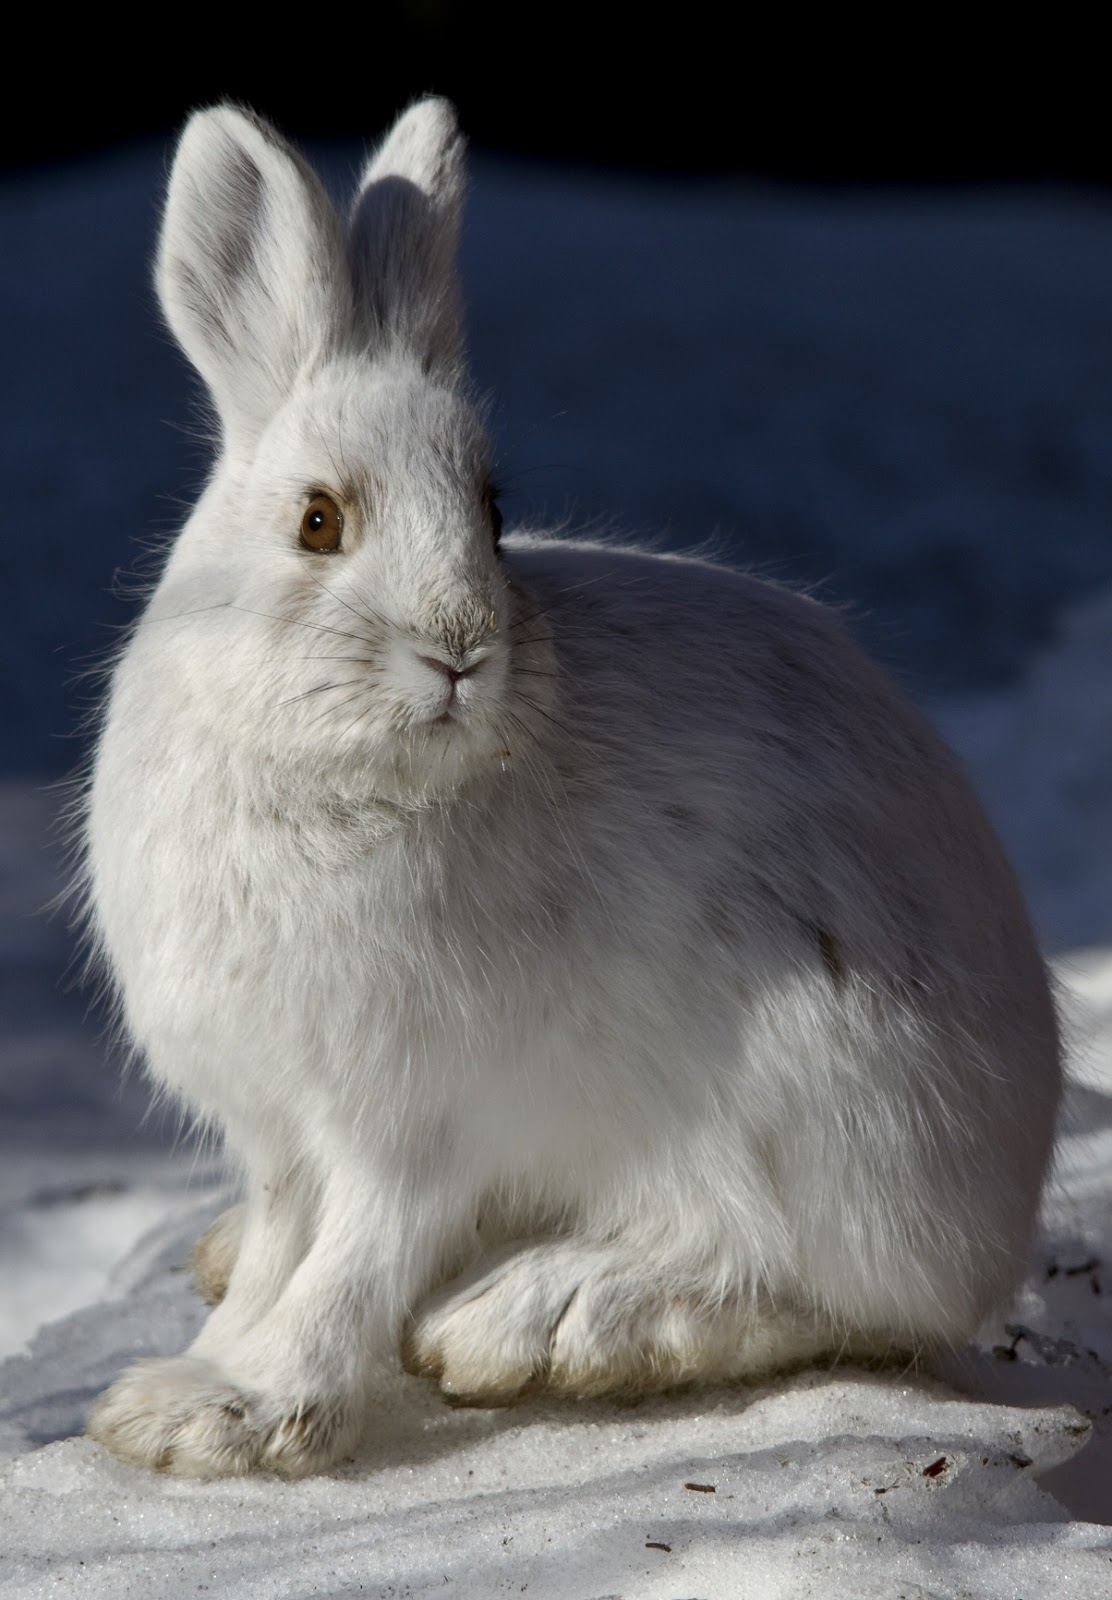 A photo of a snowshoe hare